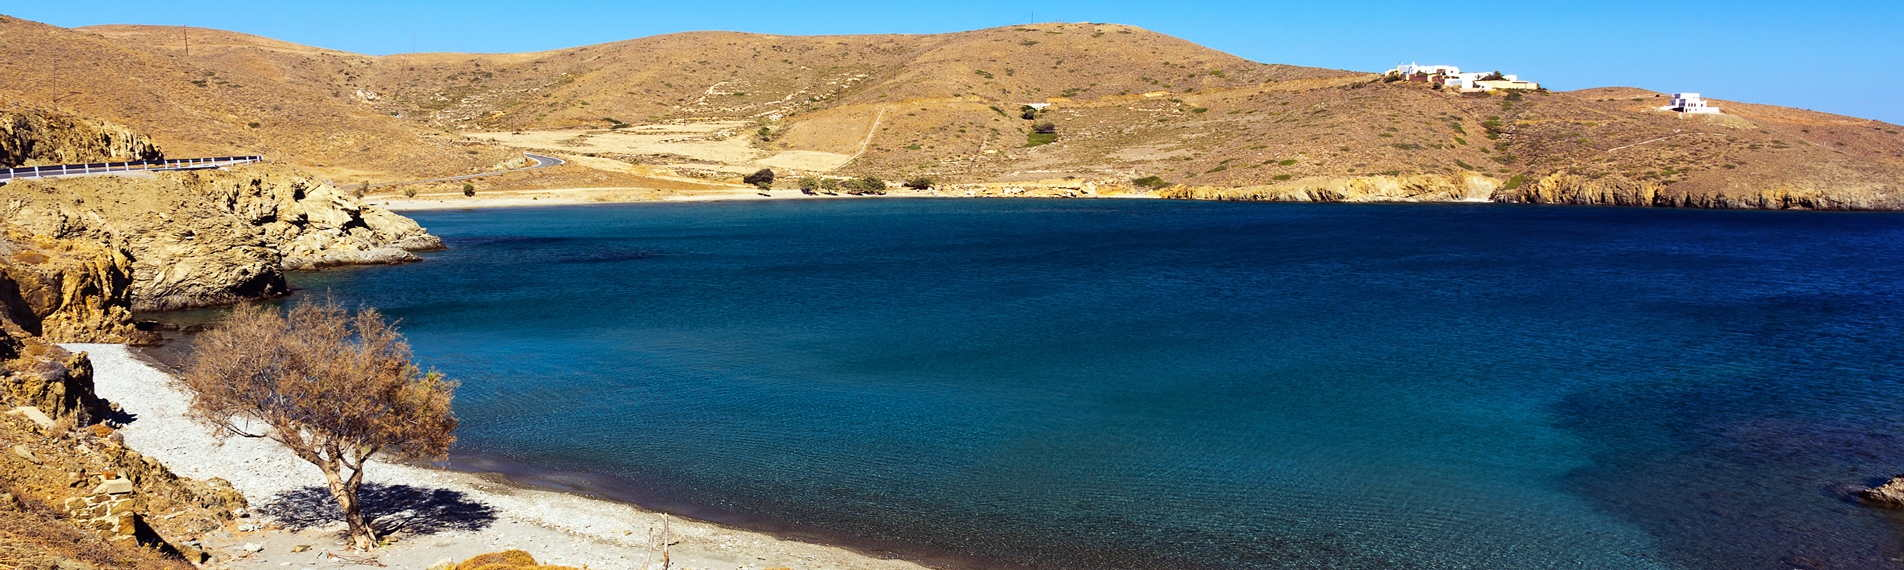 A beach on Astypalea, in the Dodecanese archipelago.